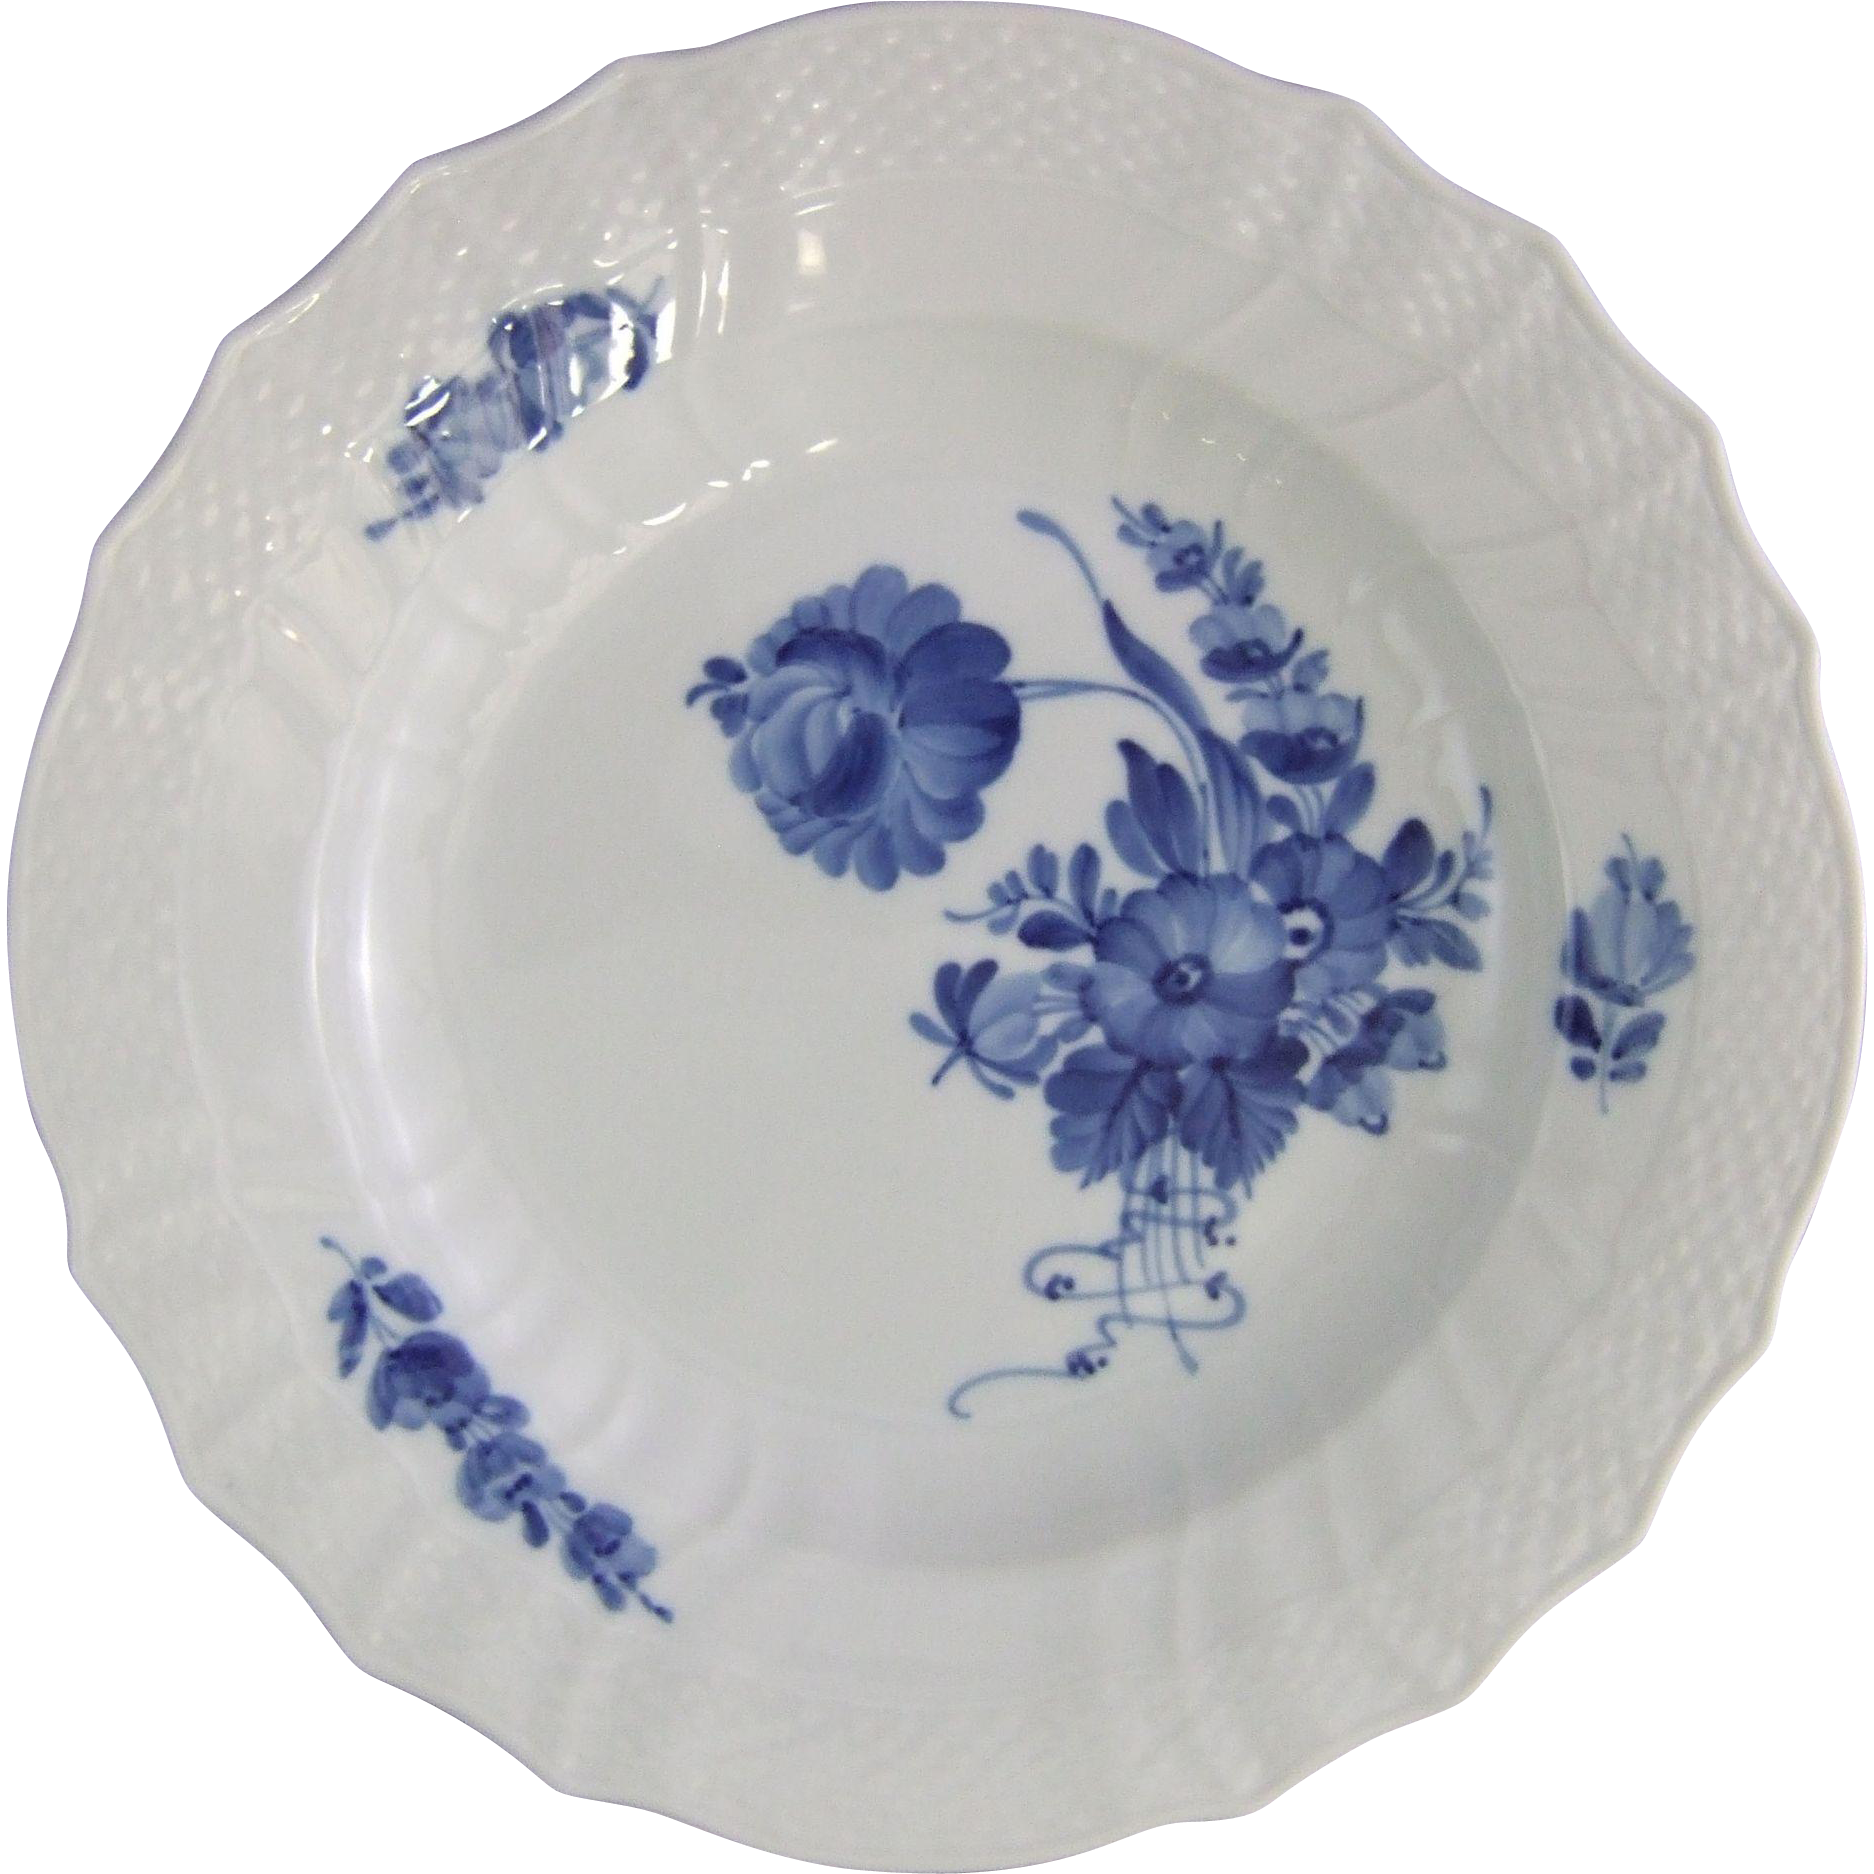 Royal Copenhagen Porcelain Denmark Blue Flowers Curved Dinner Plate 1 106 624